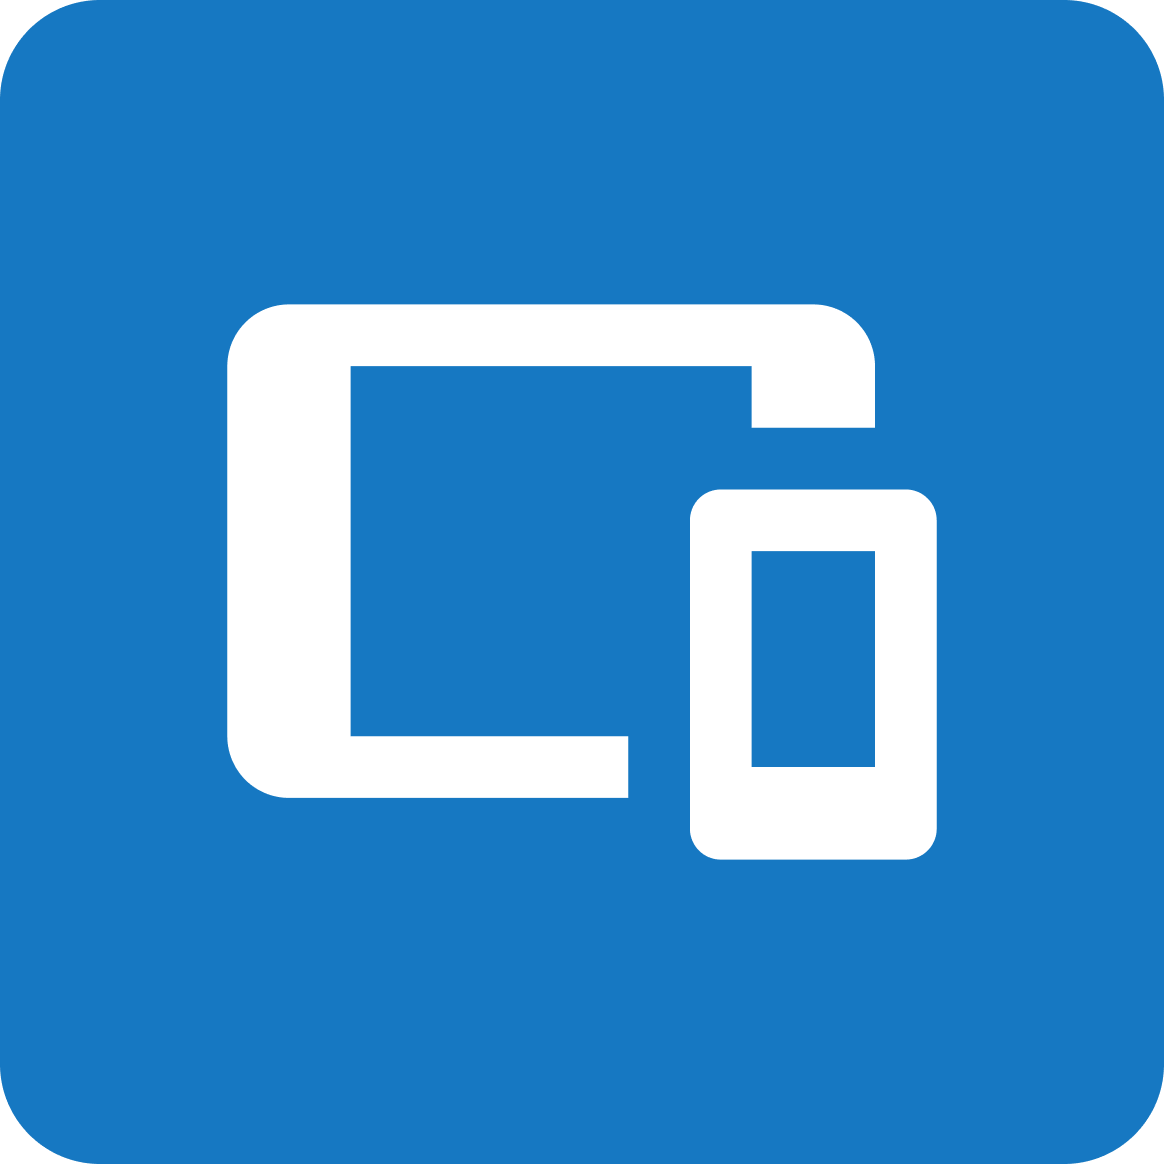 works-on-all-devices-icon